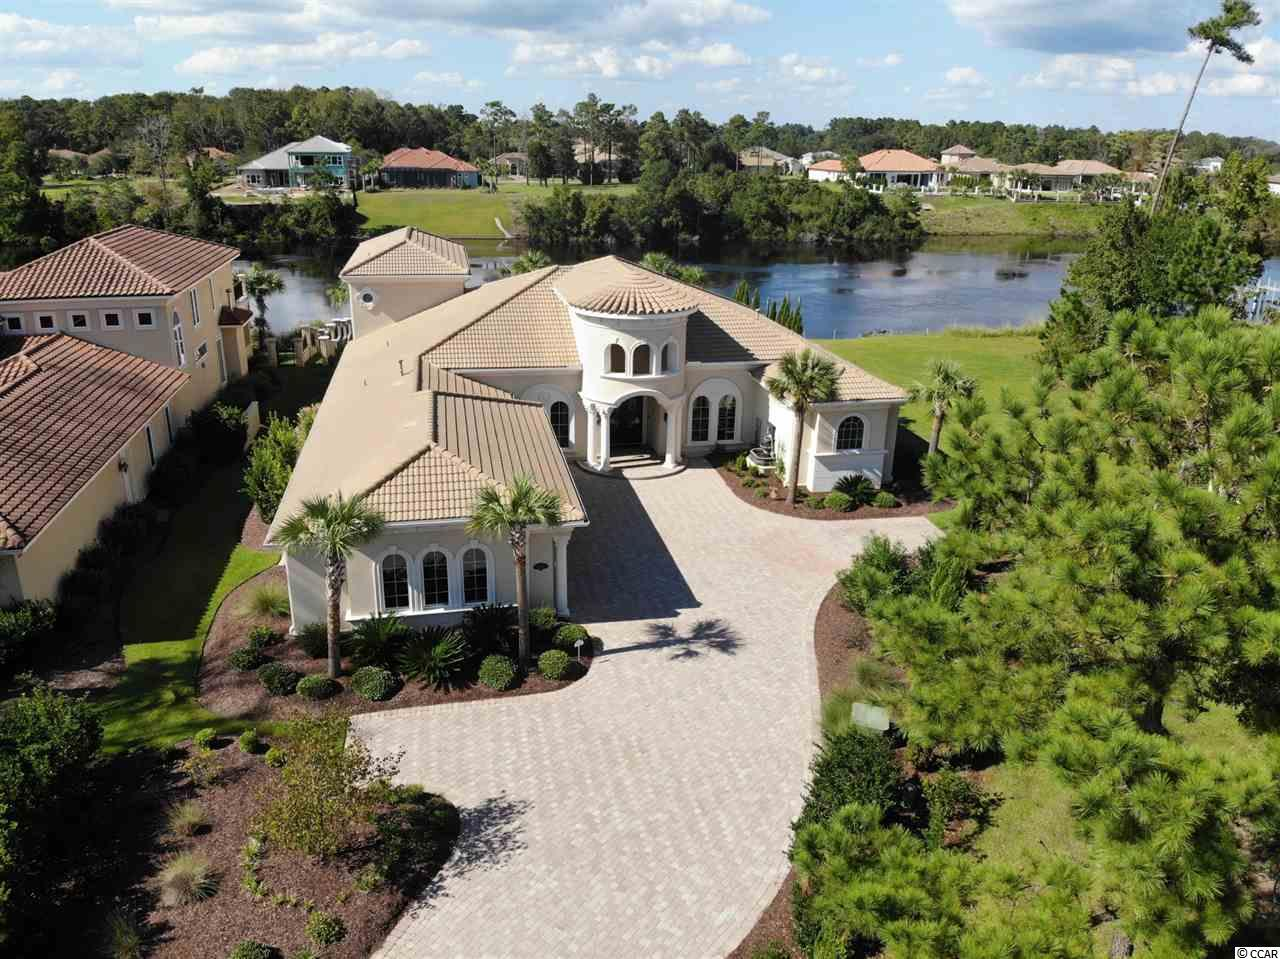 Grande Dunes - Bal Harbor house for sale in Myrtle Beach, SC